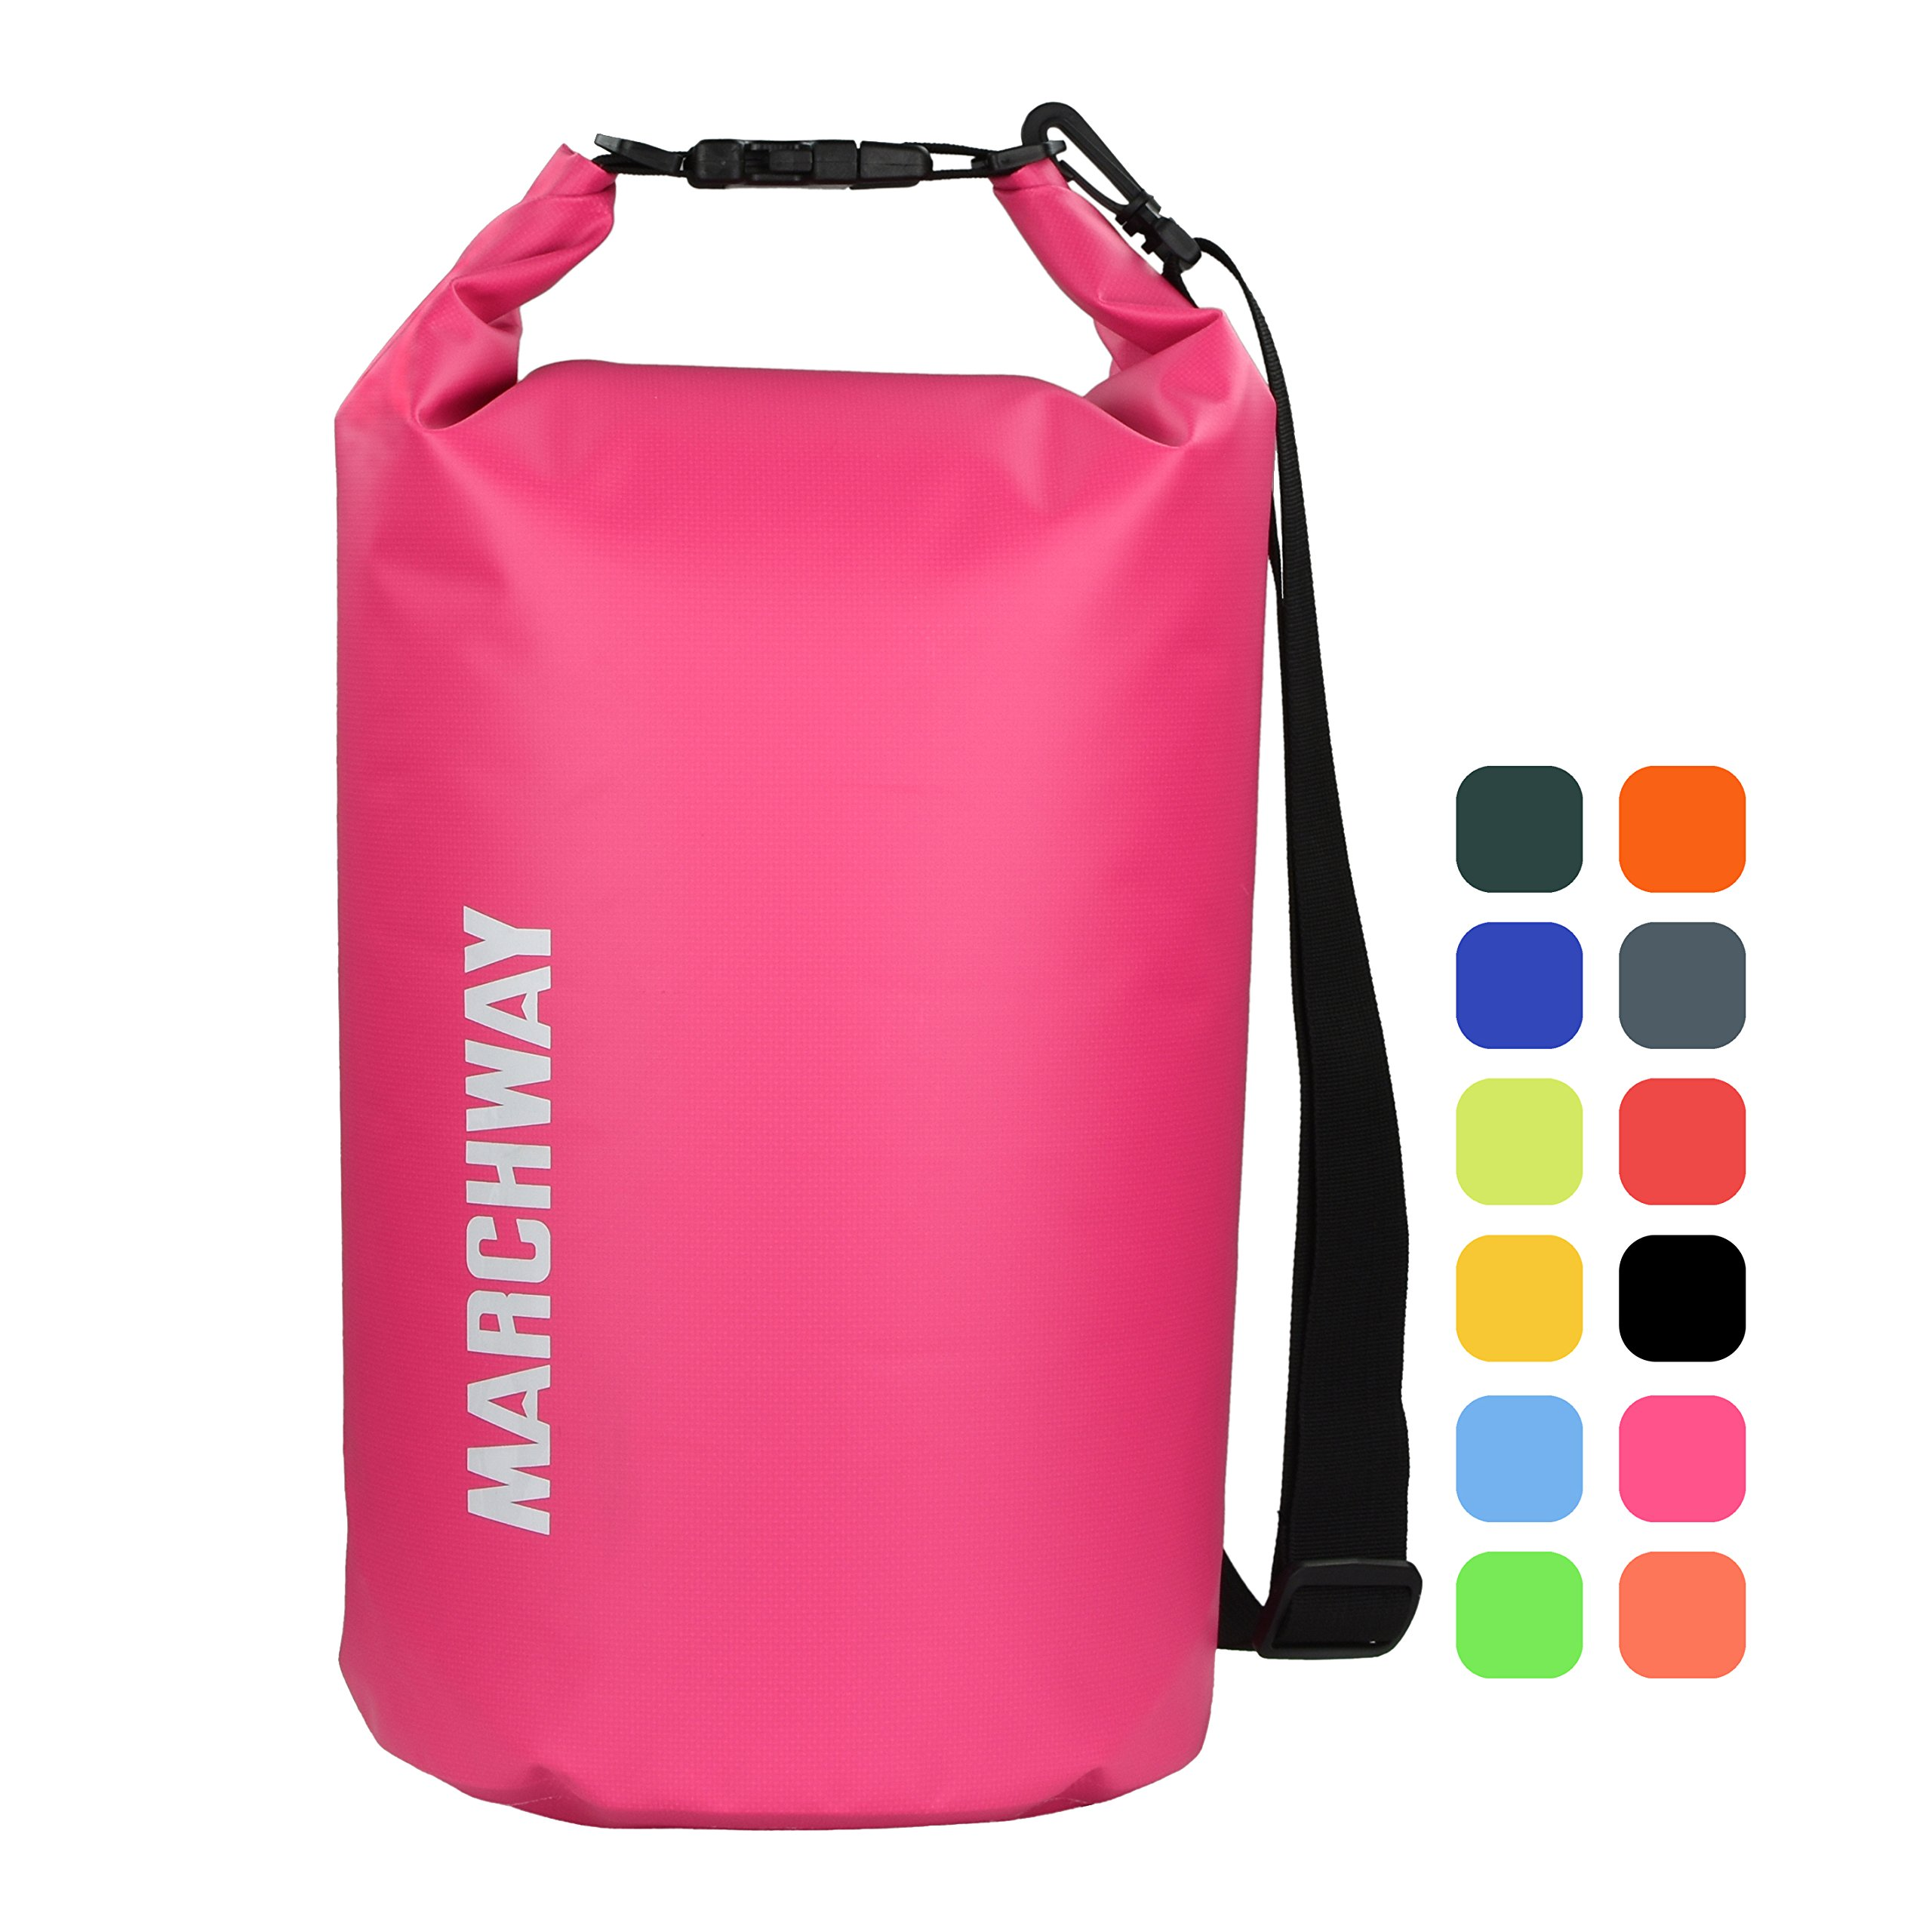 MARCHWAY Floating Waterproof Dry Bag 5L/10L/20L/30L, Roll Top Sack Keeps Gear Dry for Boat, Beach, Kayaking, Rafting, Boating, Swimming, Camping, Hiking, Canoeing, Fishing (Pink, 10L) by MARCHWAY